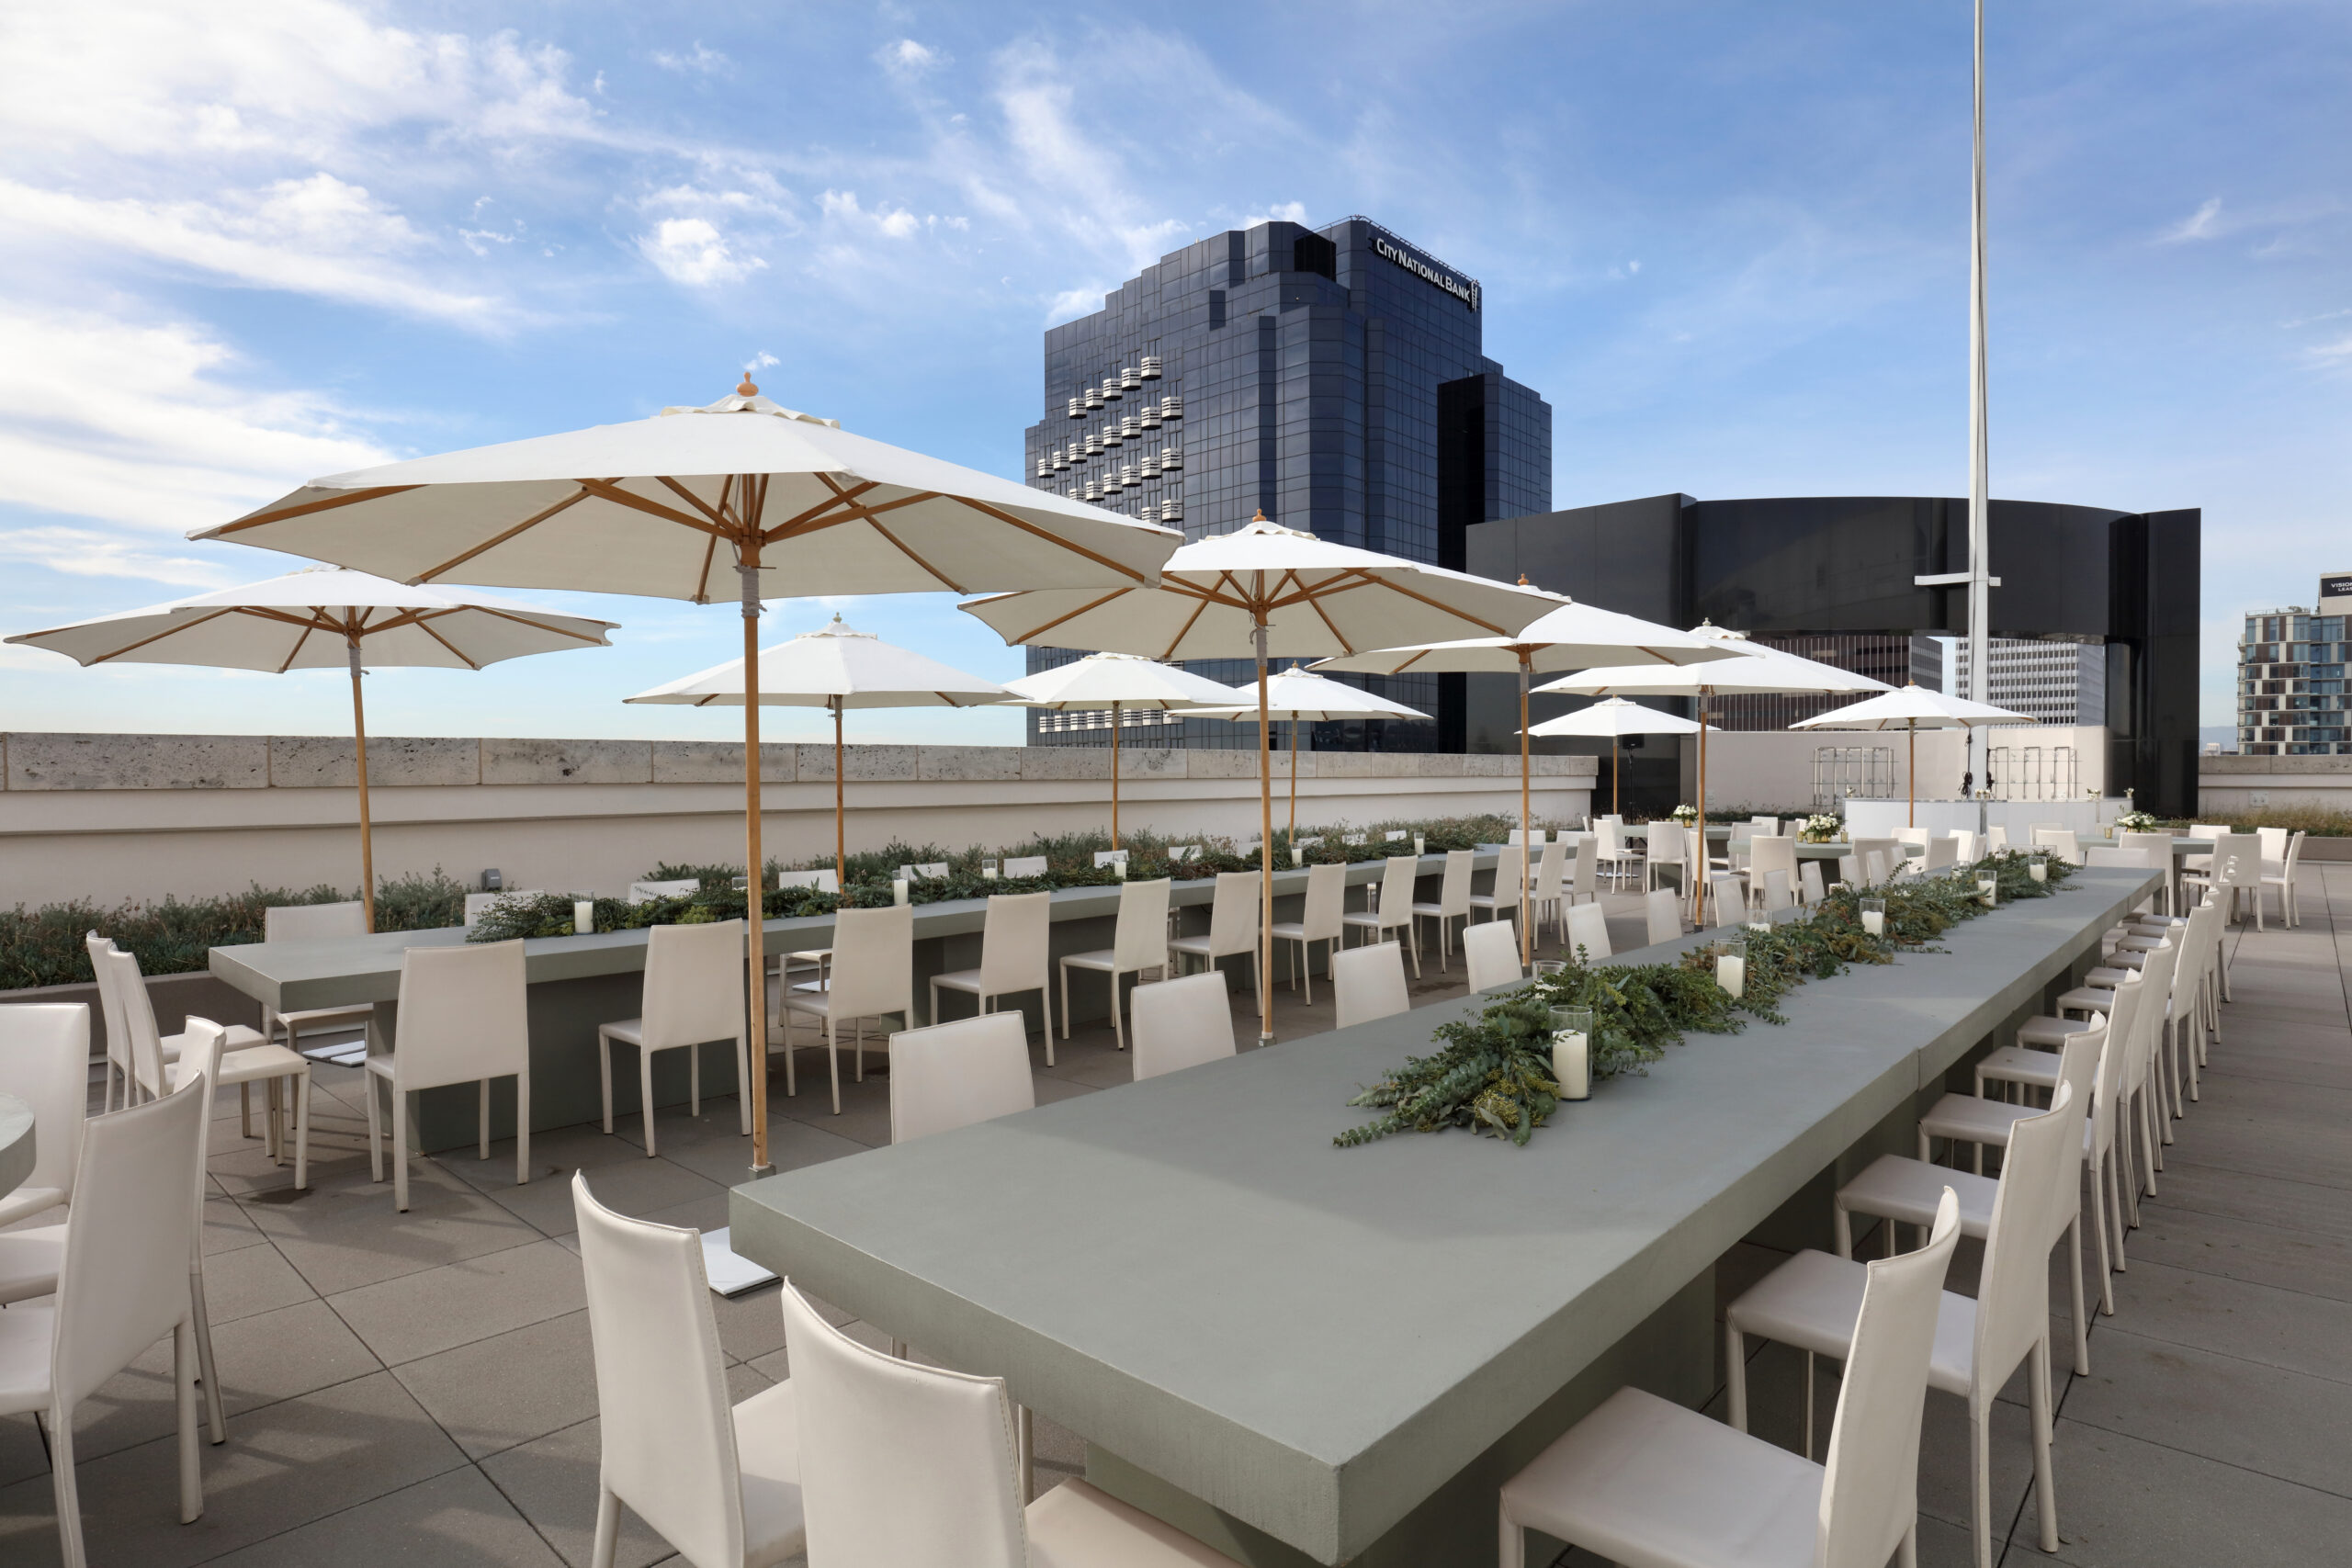 AMMP Wolfgang Puck Venue Seating View